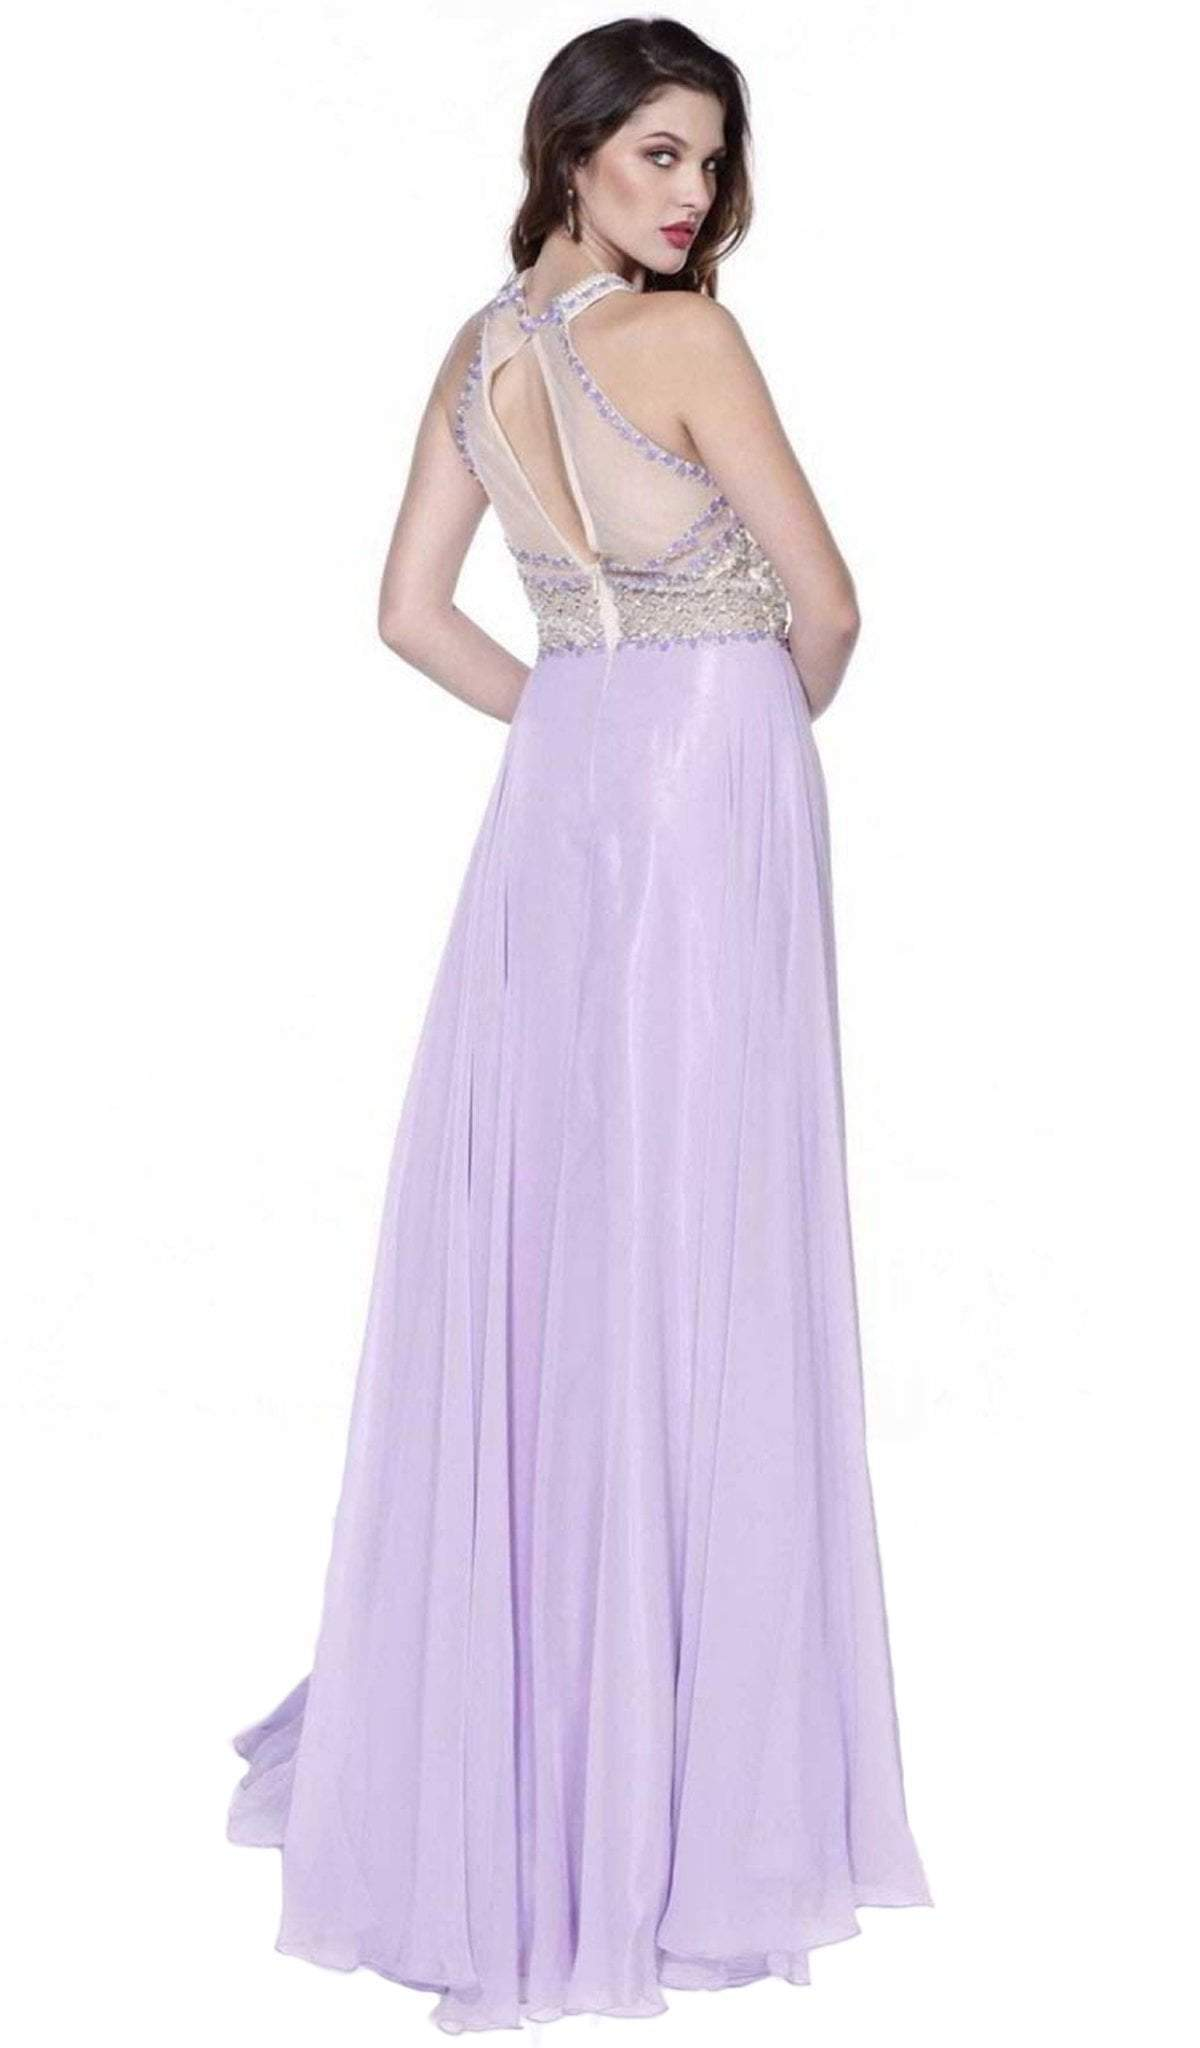 Nox Anabel - Beaded Halter Long Gown 8201SC